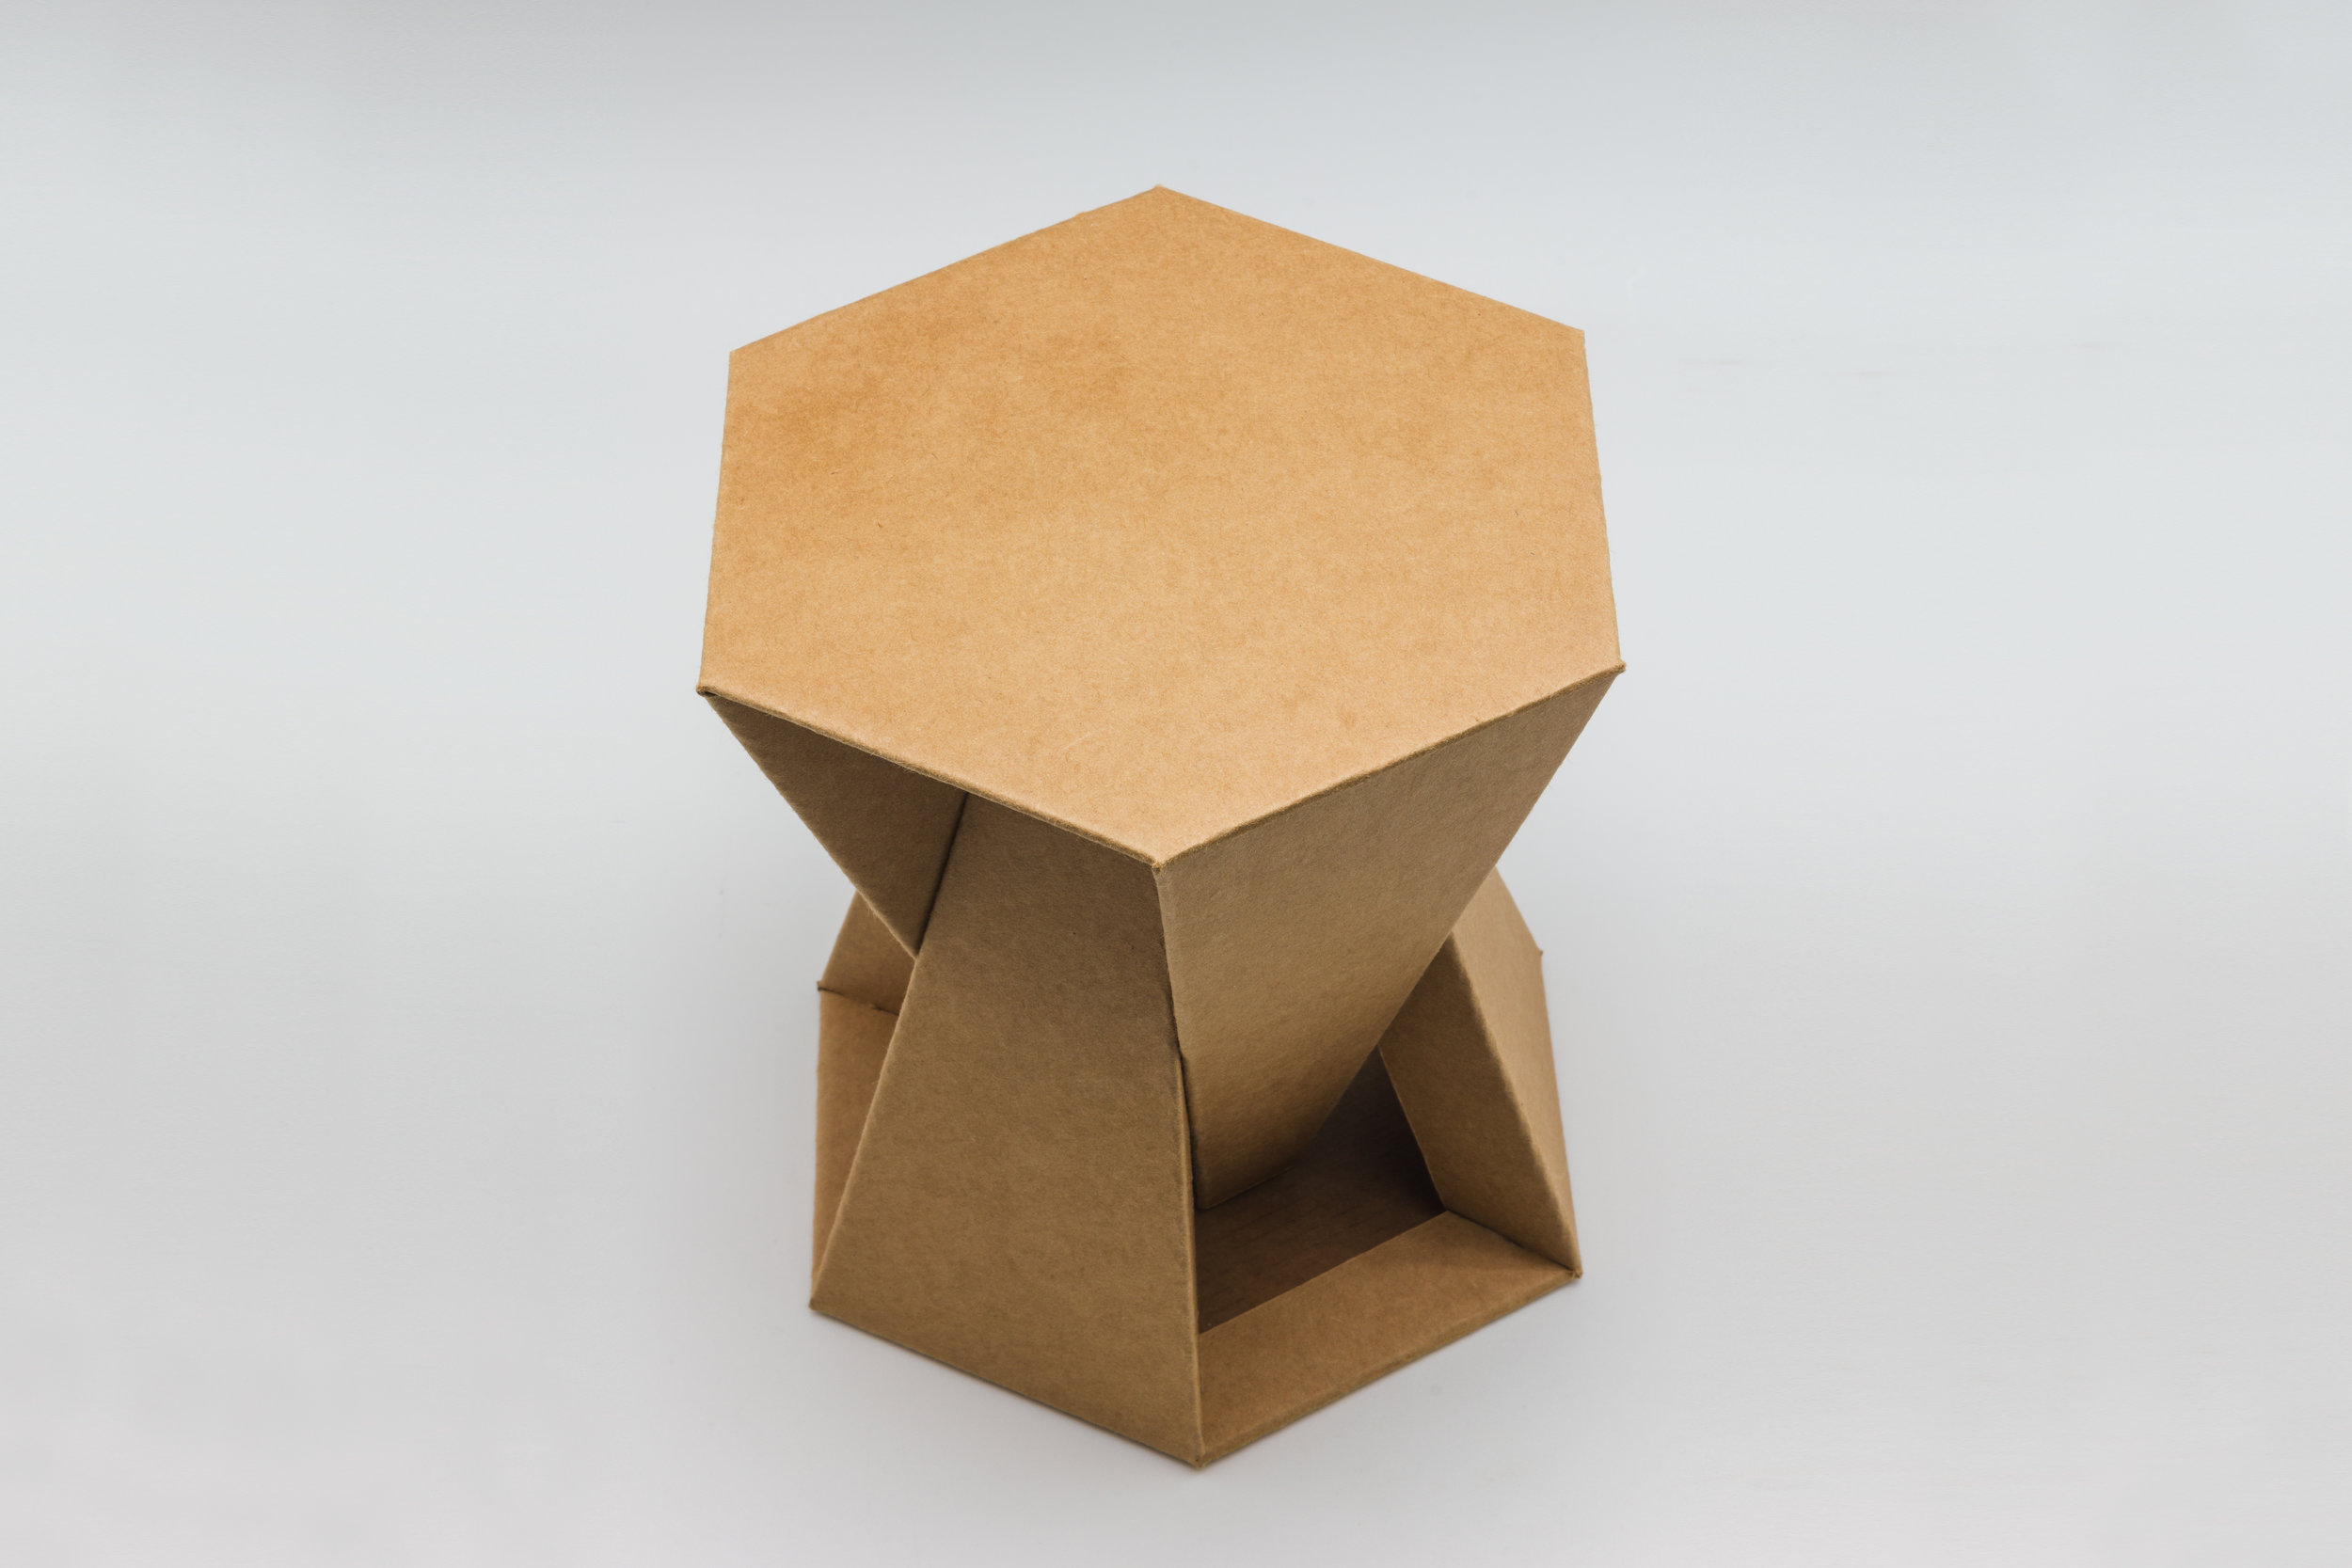 Cardboard Furniture -       96       Normal  0          false  false  false    EN-US  X-NONE  X-NONE                                                                                                                                                                                                                                                                                                                                                                                                                                                                                                                                                                                                                                                                                                                                                                                                                                                     /* Style Definitions */ table.MsoNormalTable {mso-style-name: